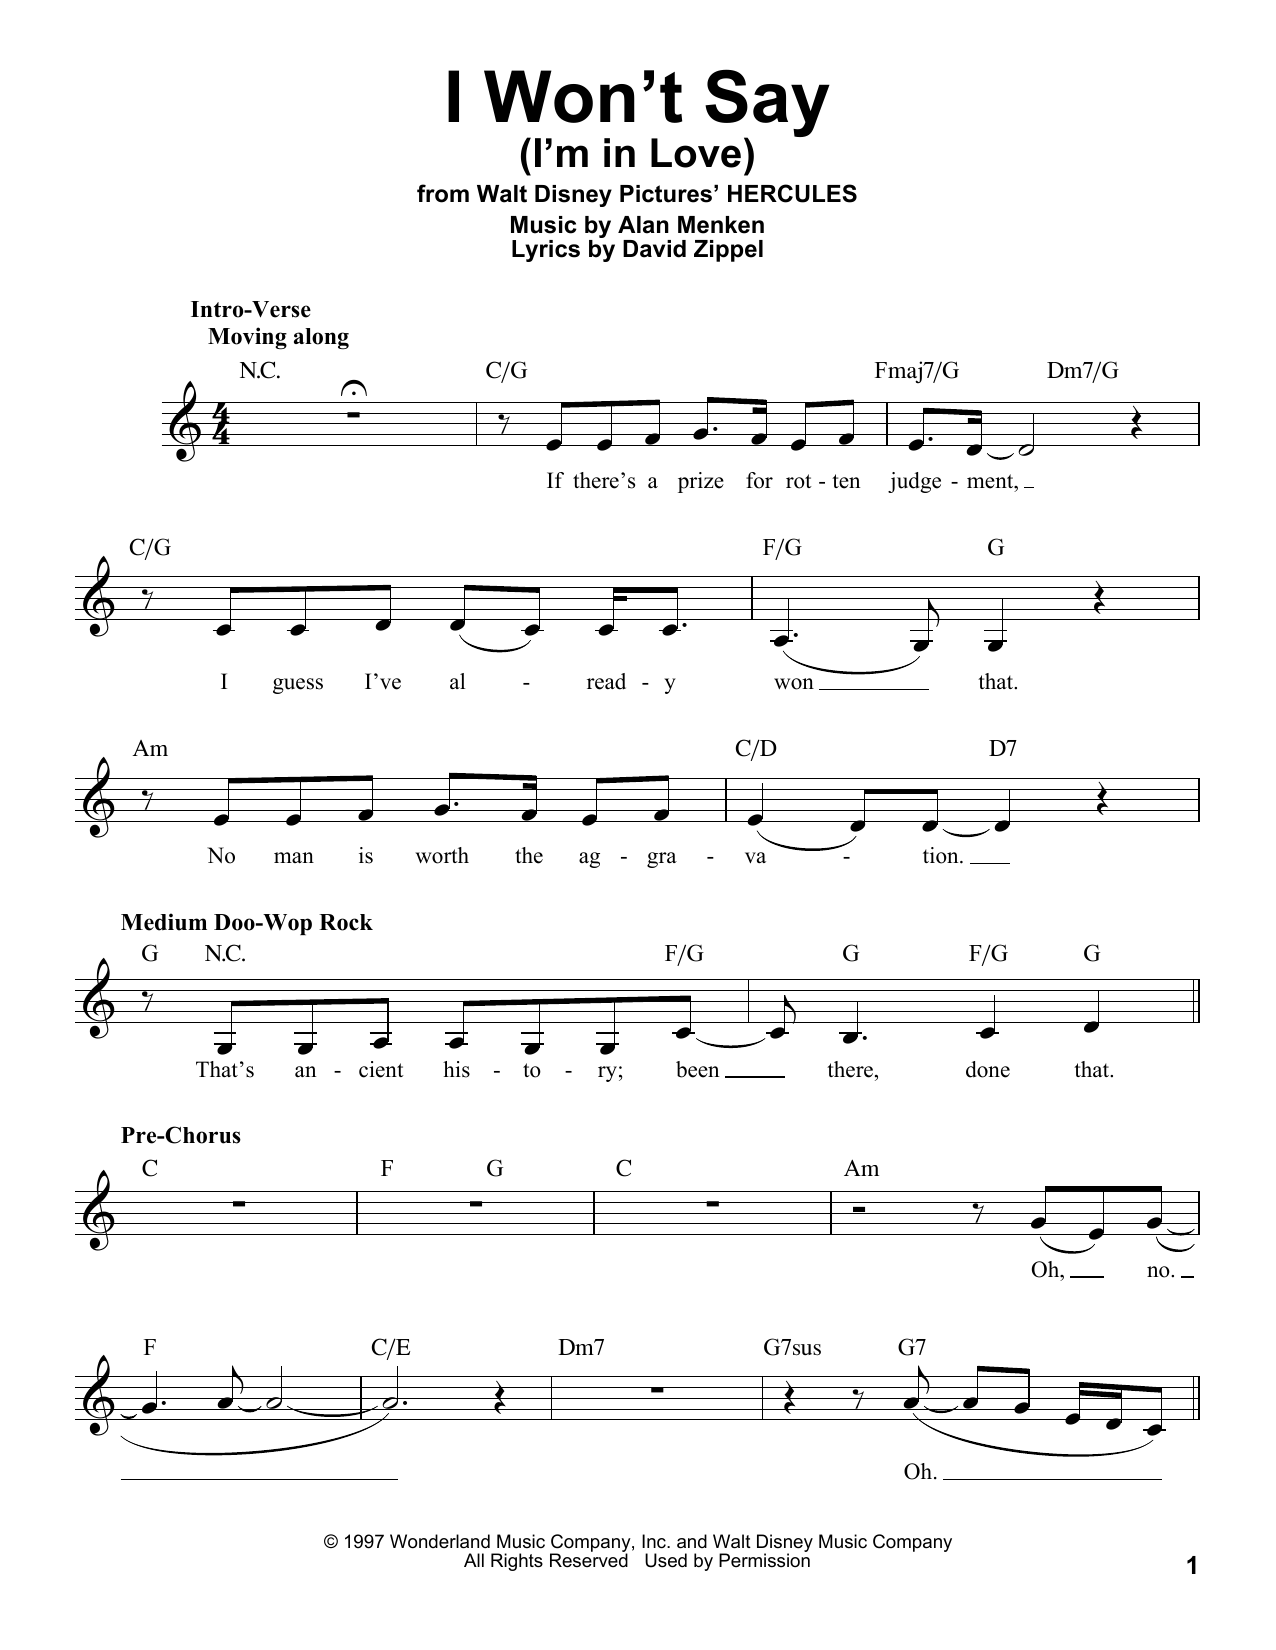 I Won't Say (I'm In Love) Sheet Music